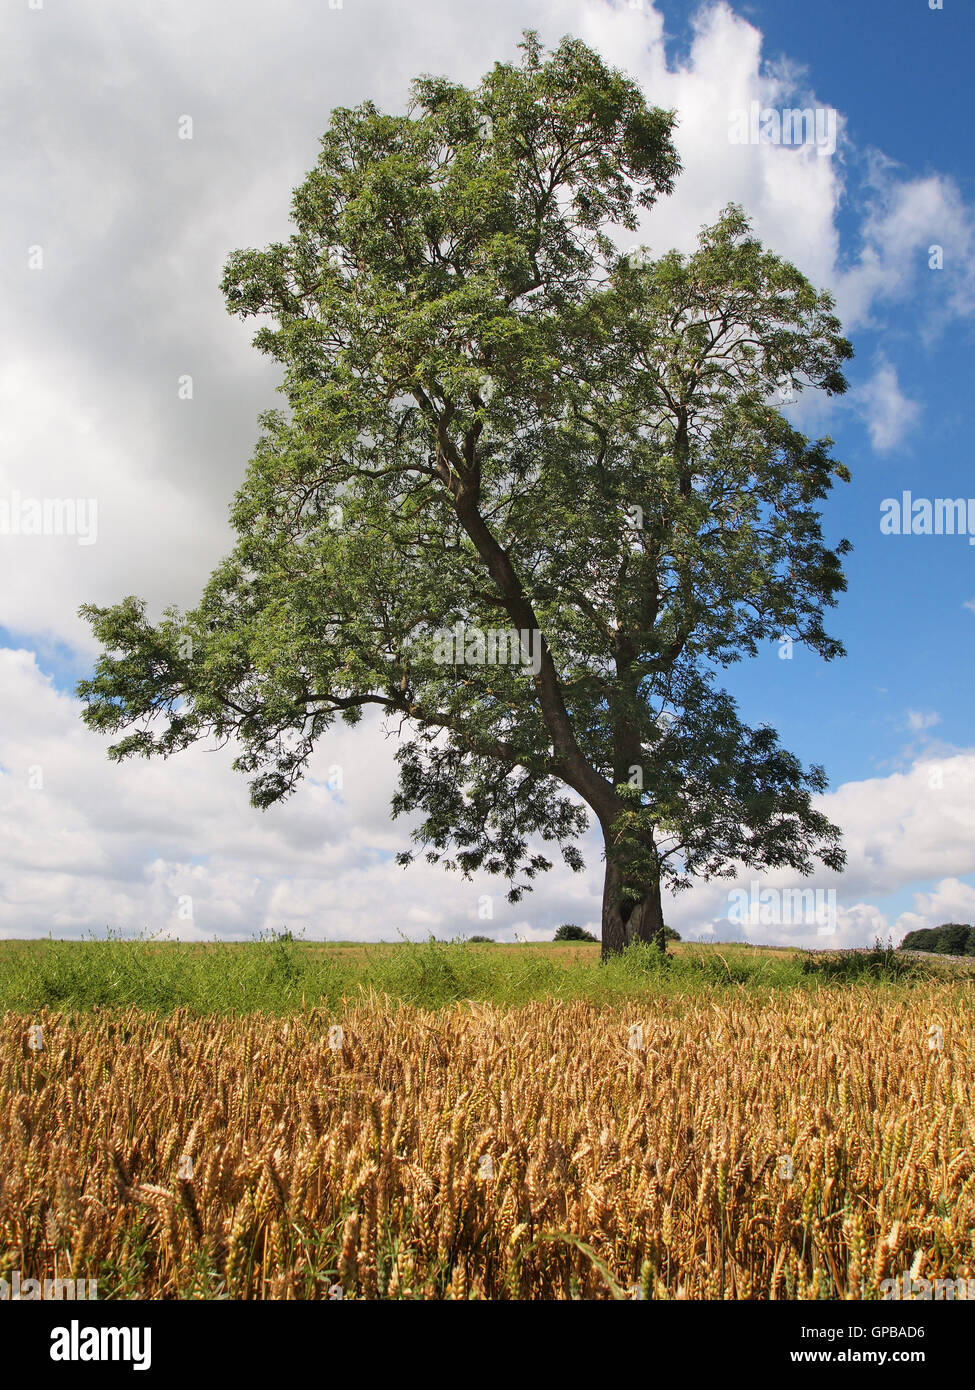 Healthy Ash tree in Derbyshire, with wheat field in foreground. With Ash die-back threatening, this could soon be - Stock Image